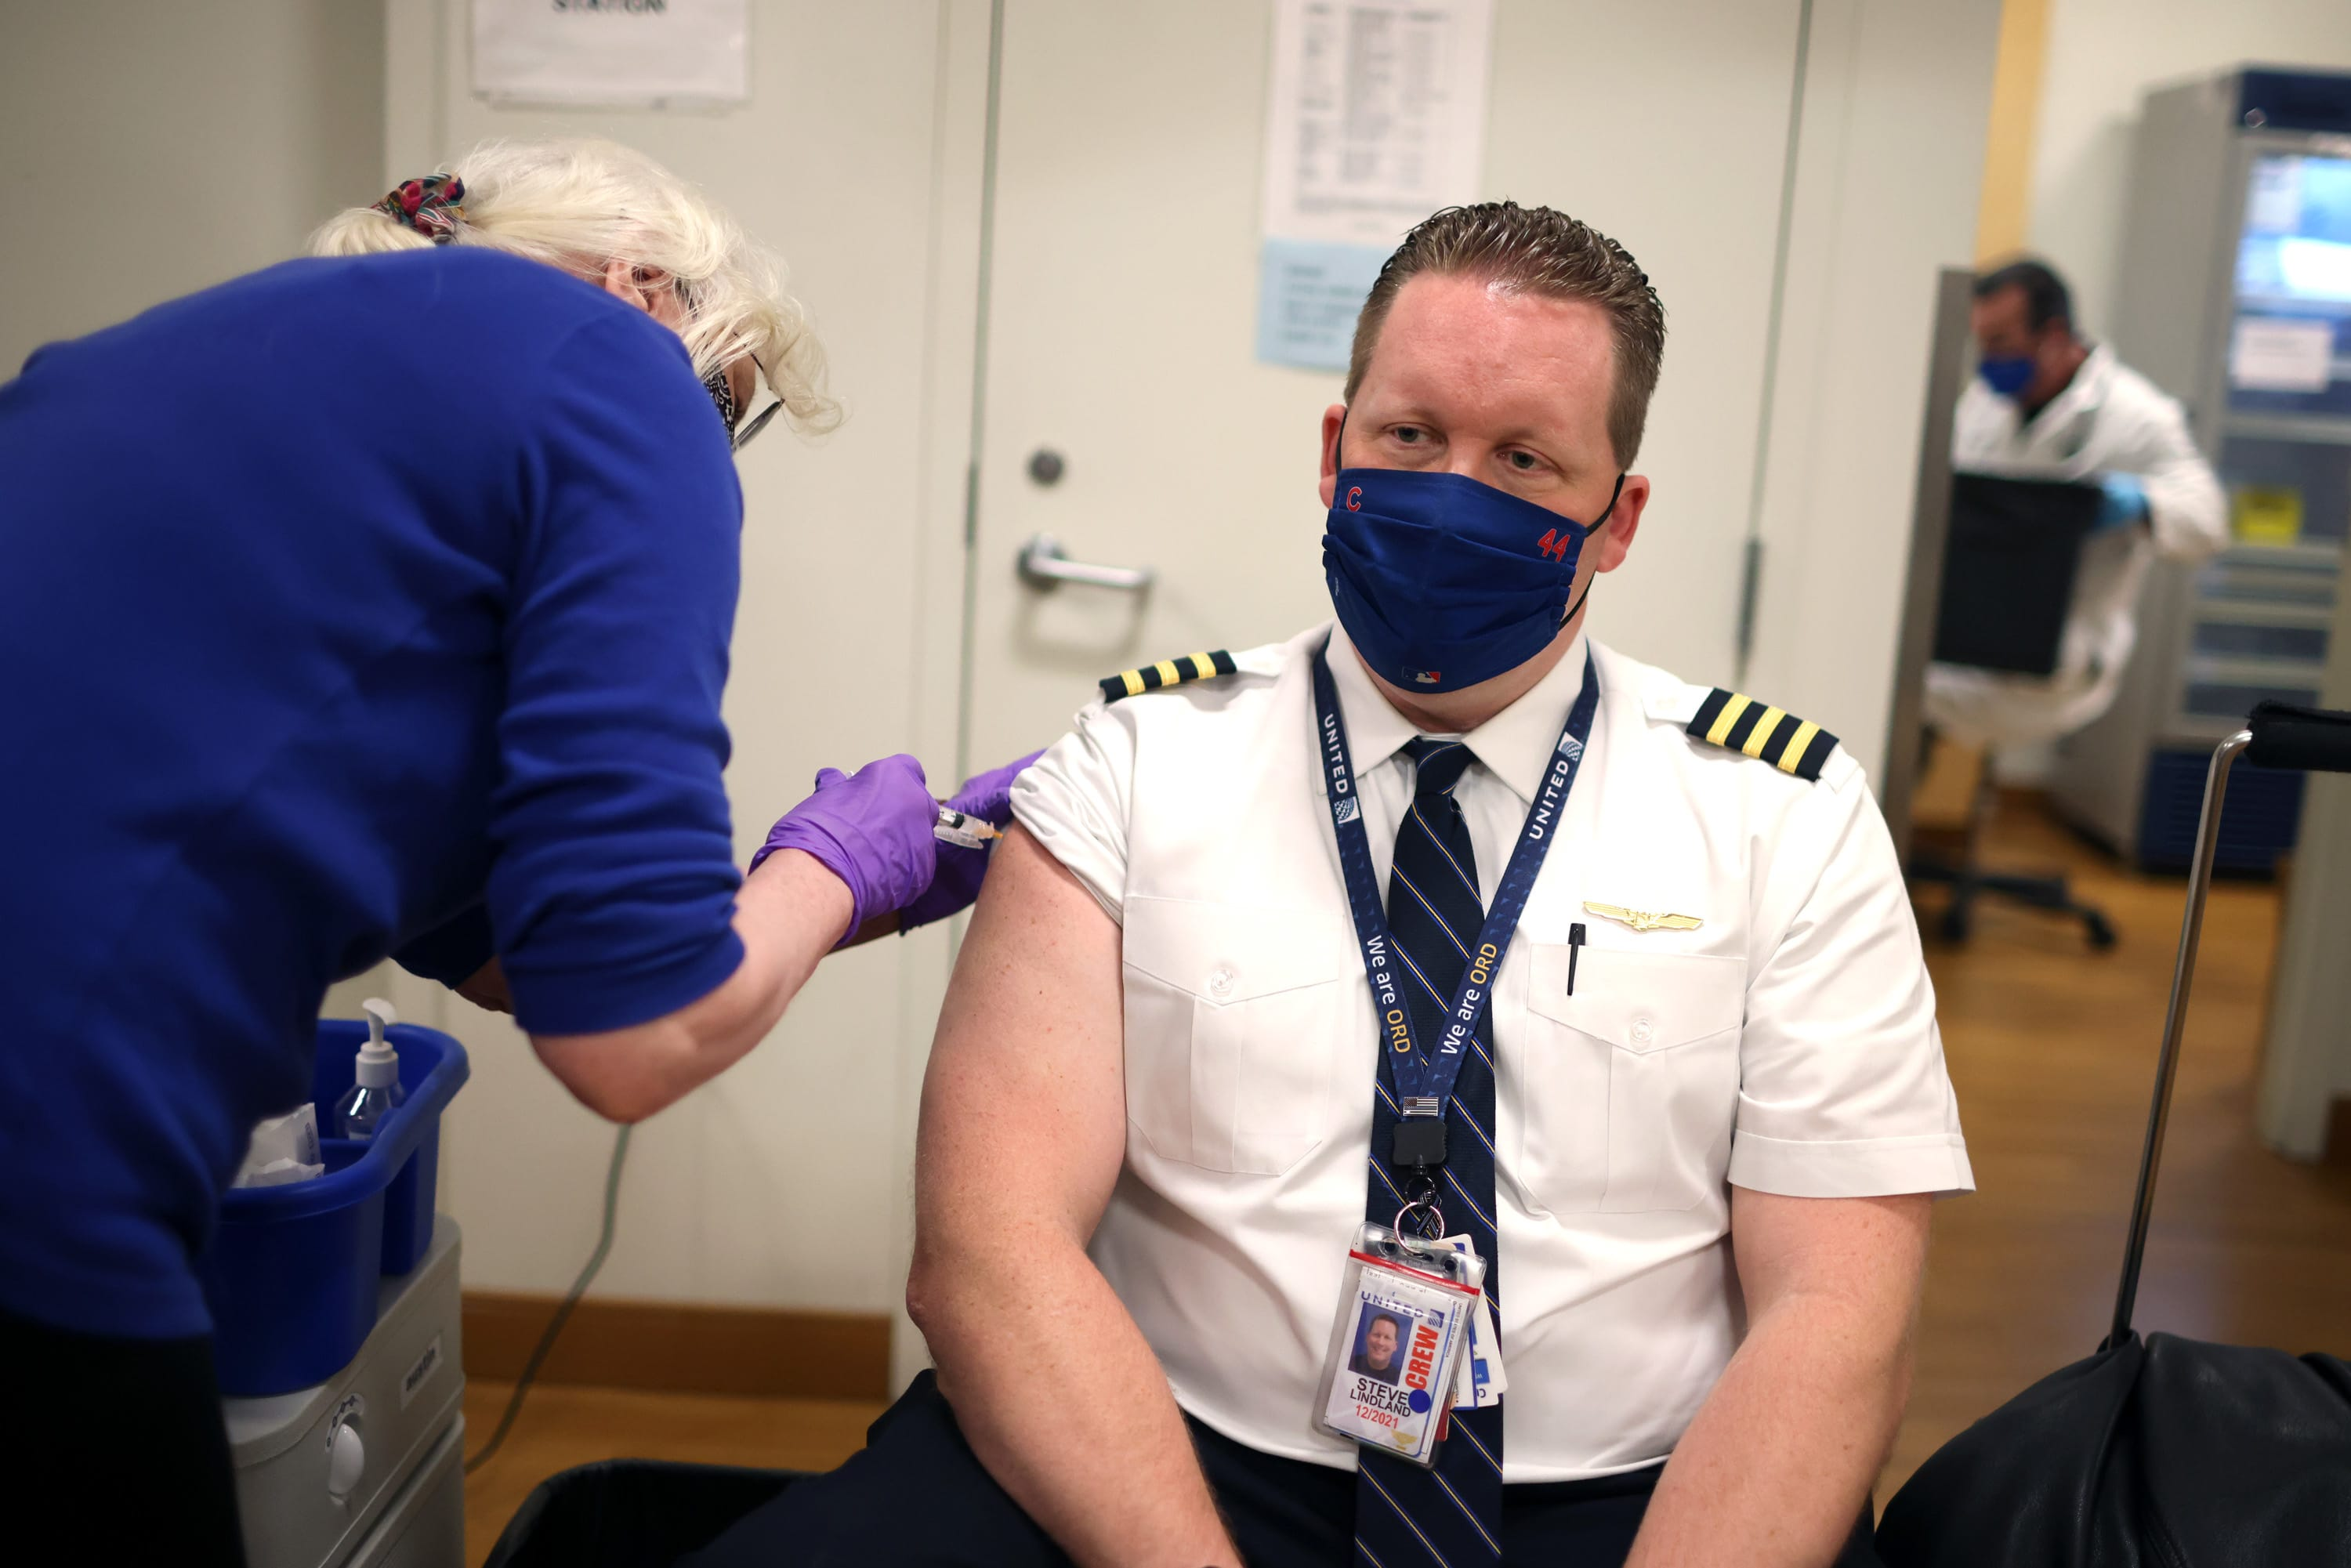 United will require its U.S. employees to be vaccinated, a first for country's major airlines